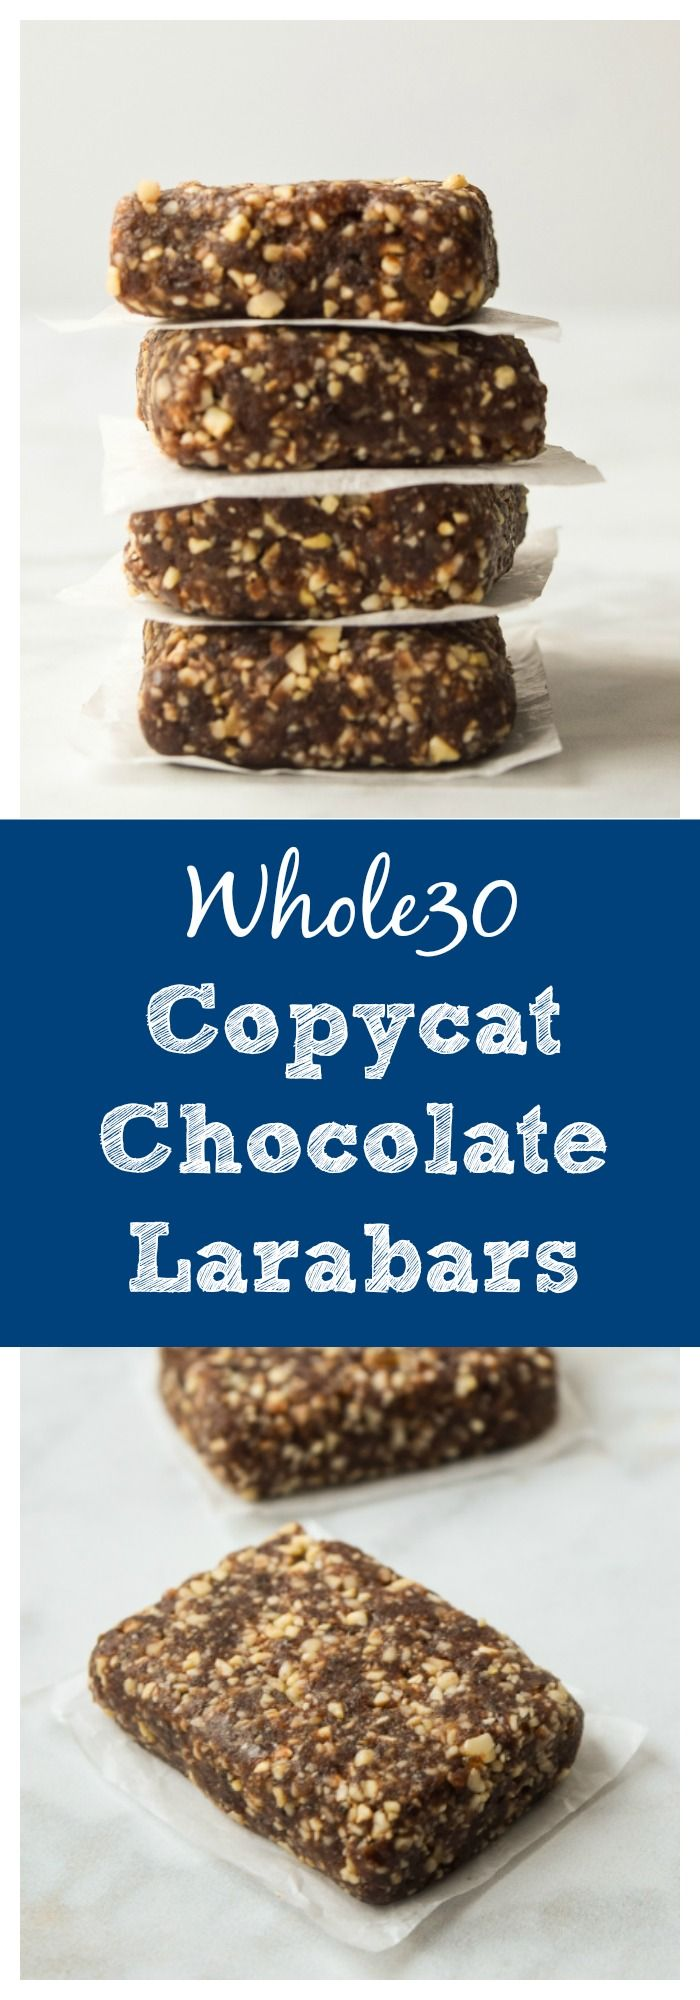 Easy Homemade Chocolate Larabars (Whole30 Paleo) - a sweet, chocolatey, protein-packed snack made with only 3 ingredients, perfect for grab-and-go and so easy to make! | tastythin.com